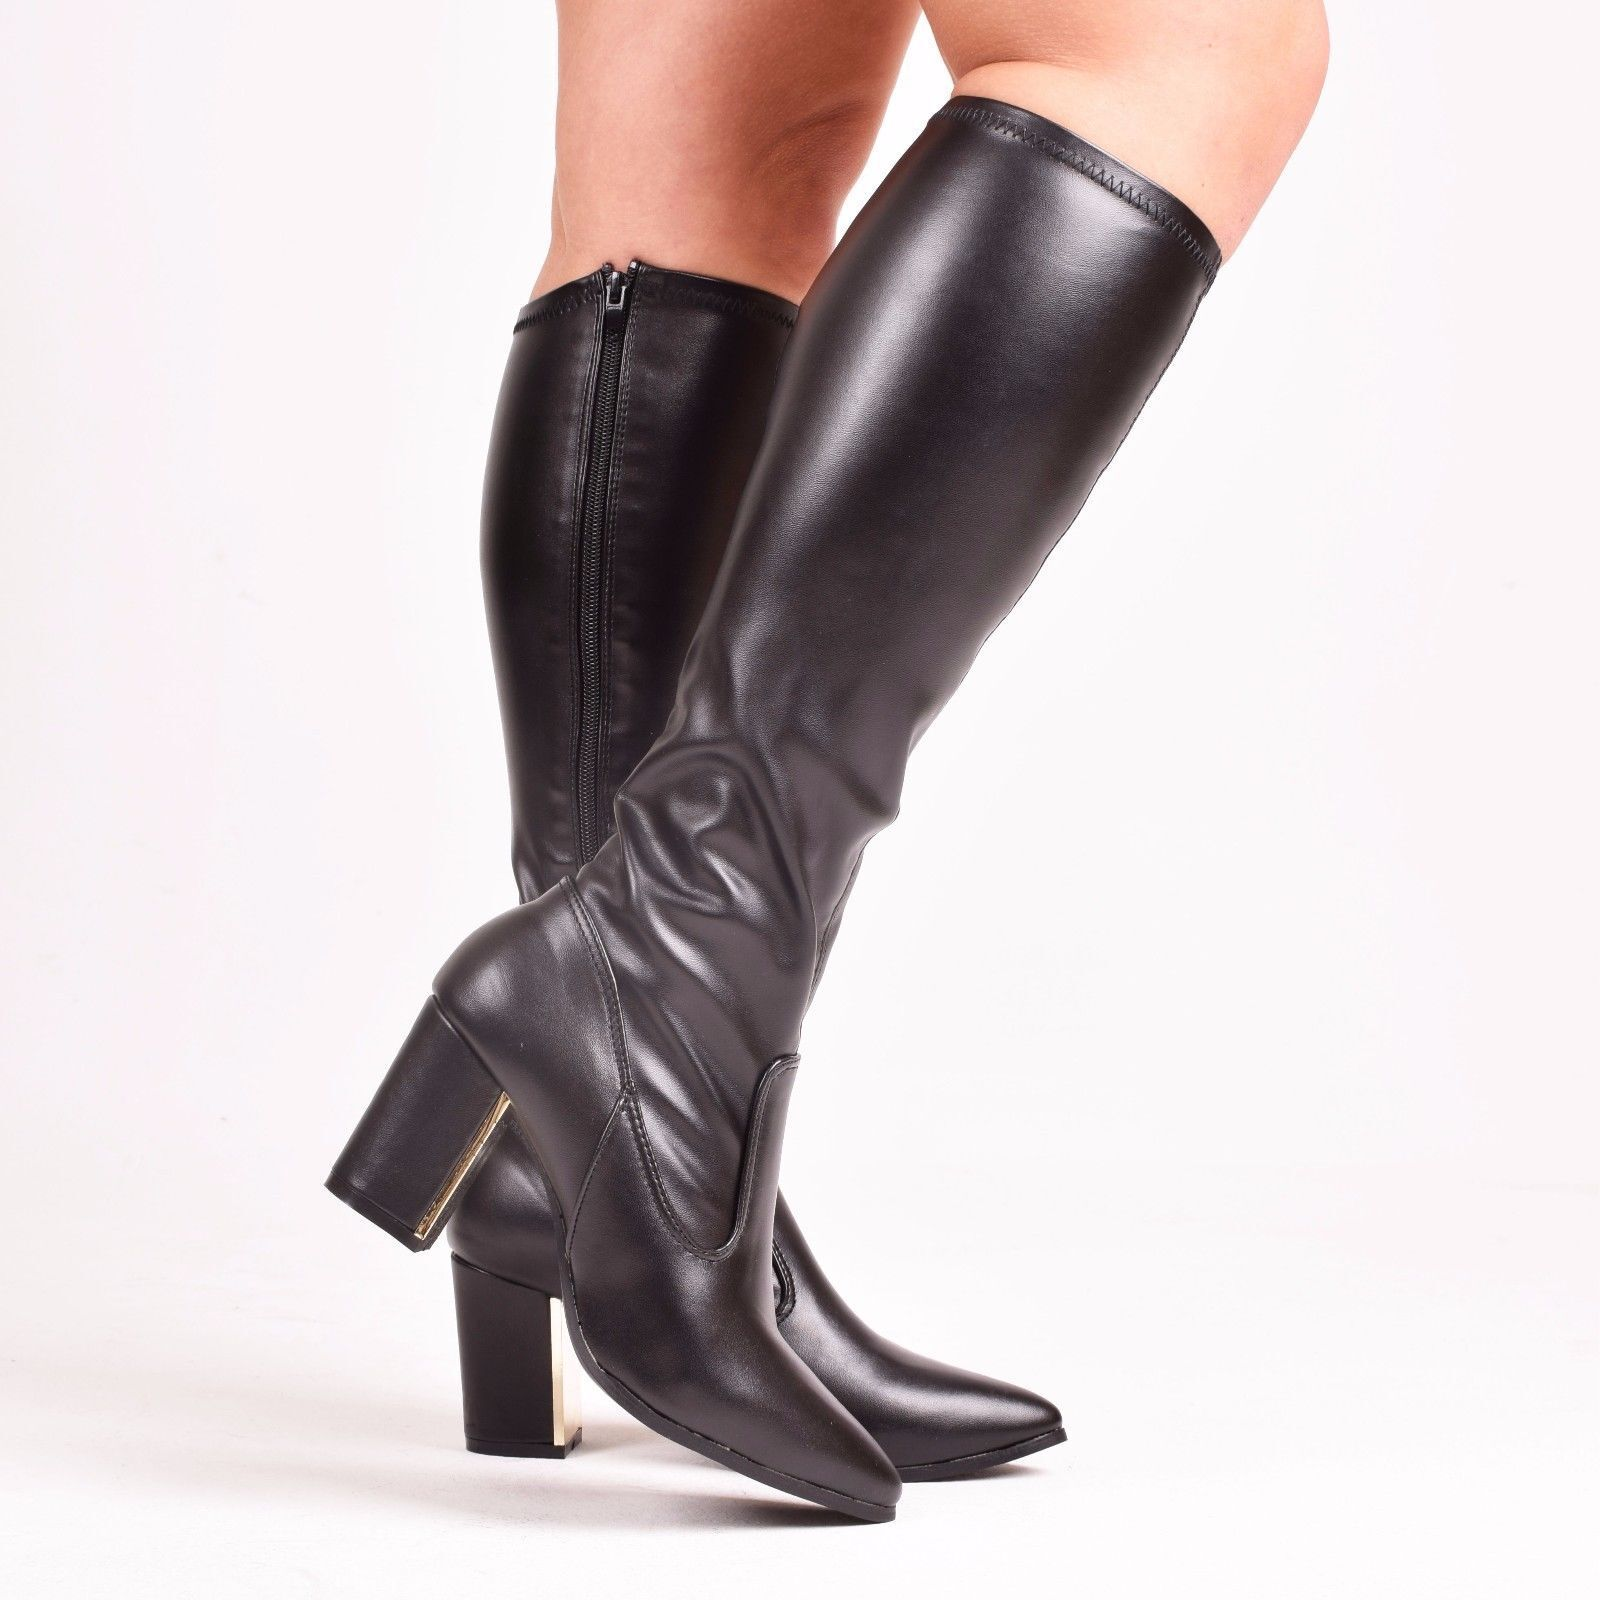 Leather Knee High Boot Size 8 M D83856